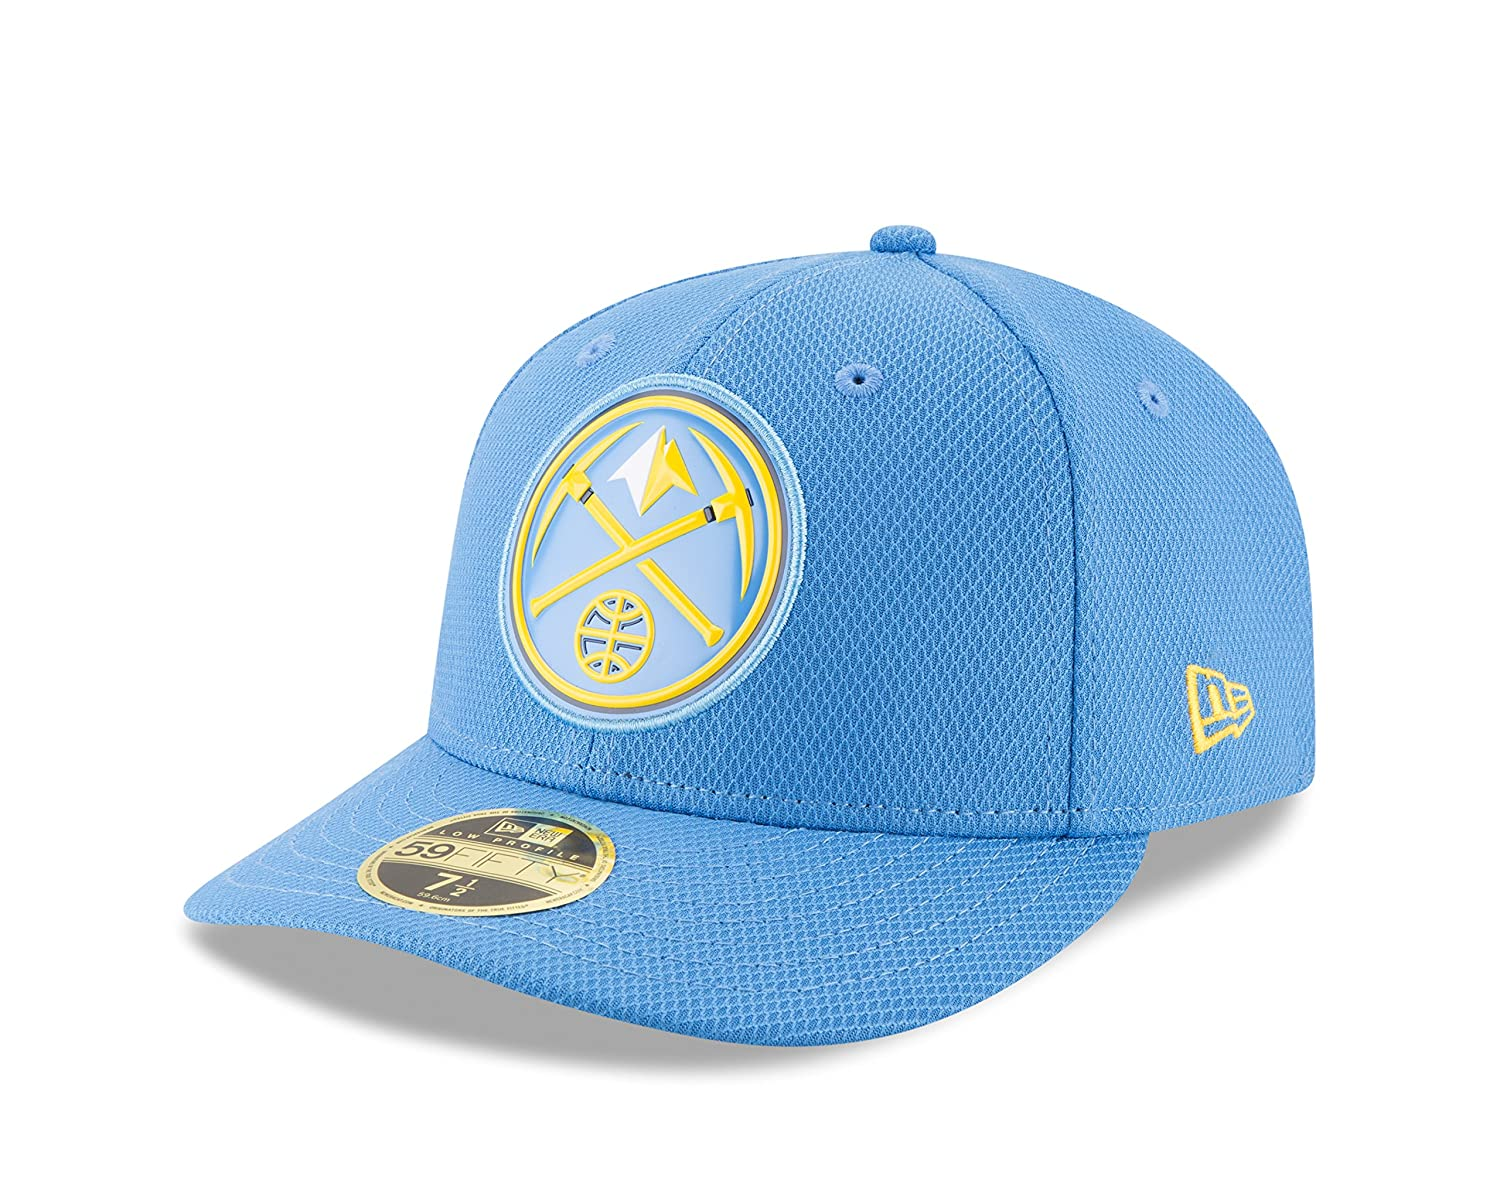 new arrival 1cf8a 1ad63 Amazon.com   NBA Denver Nuggets Adult Bevel Team Low Profile 59FIFTY Fitted  Cap, 7 1 2, Blue   Sports   Outdoors